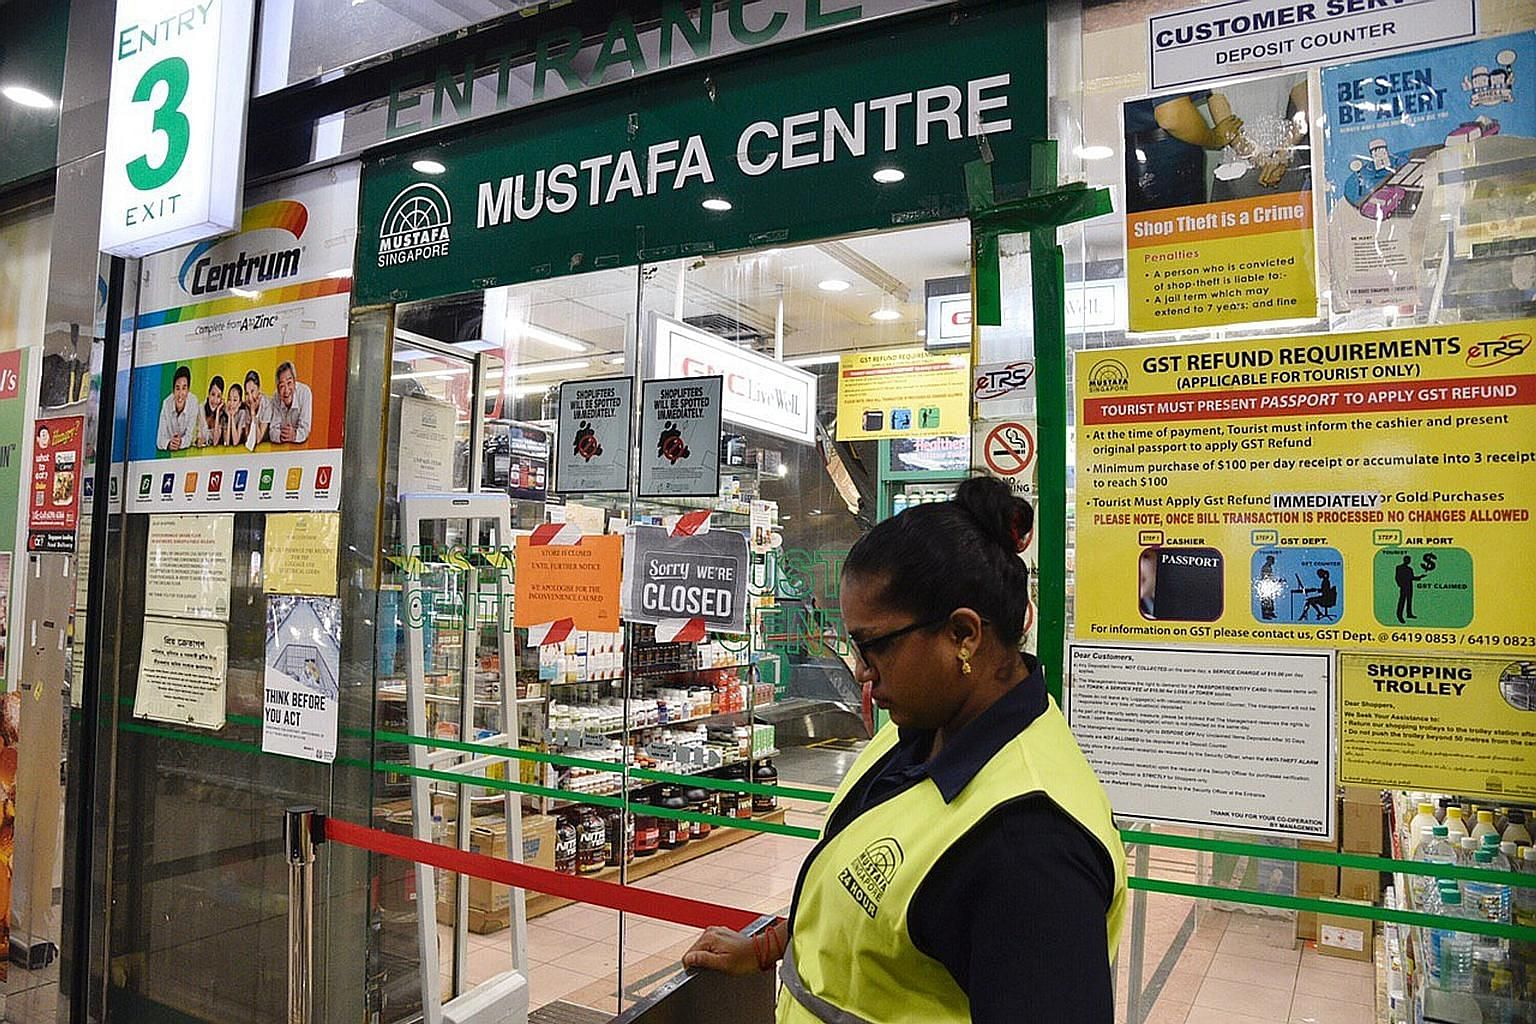 A sign put up late last night at the 24-hour Mustafa Centre, announcing that it would be closed until further notice. A total of 11 cases - including those announced earlier - have been linked to the cluster.